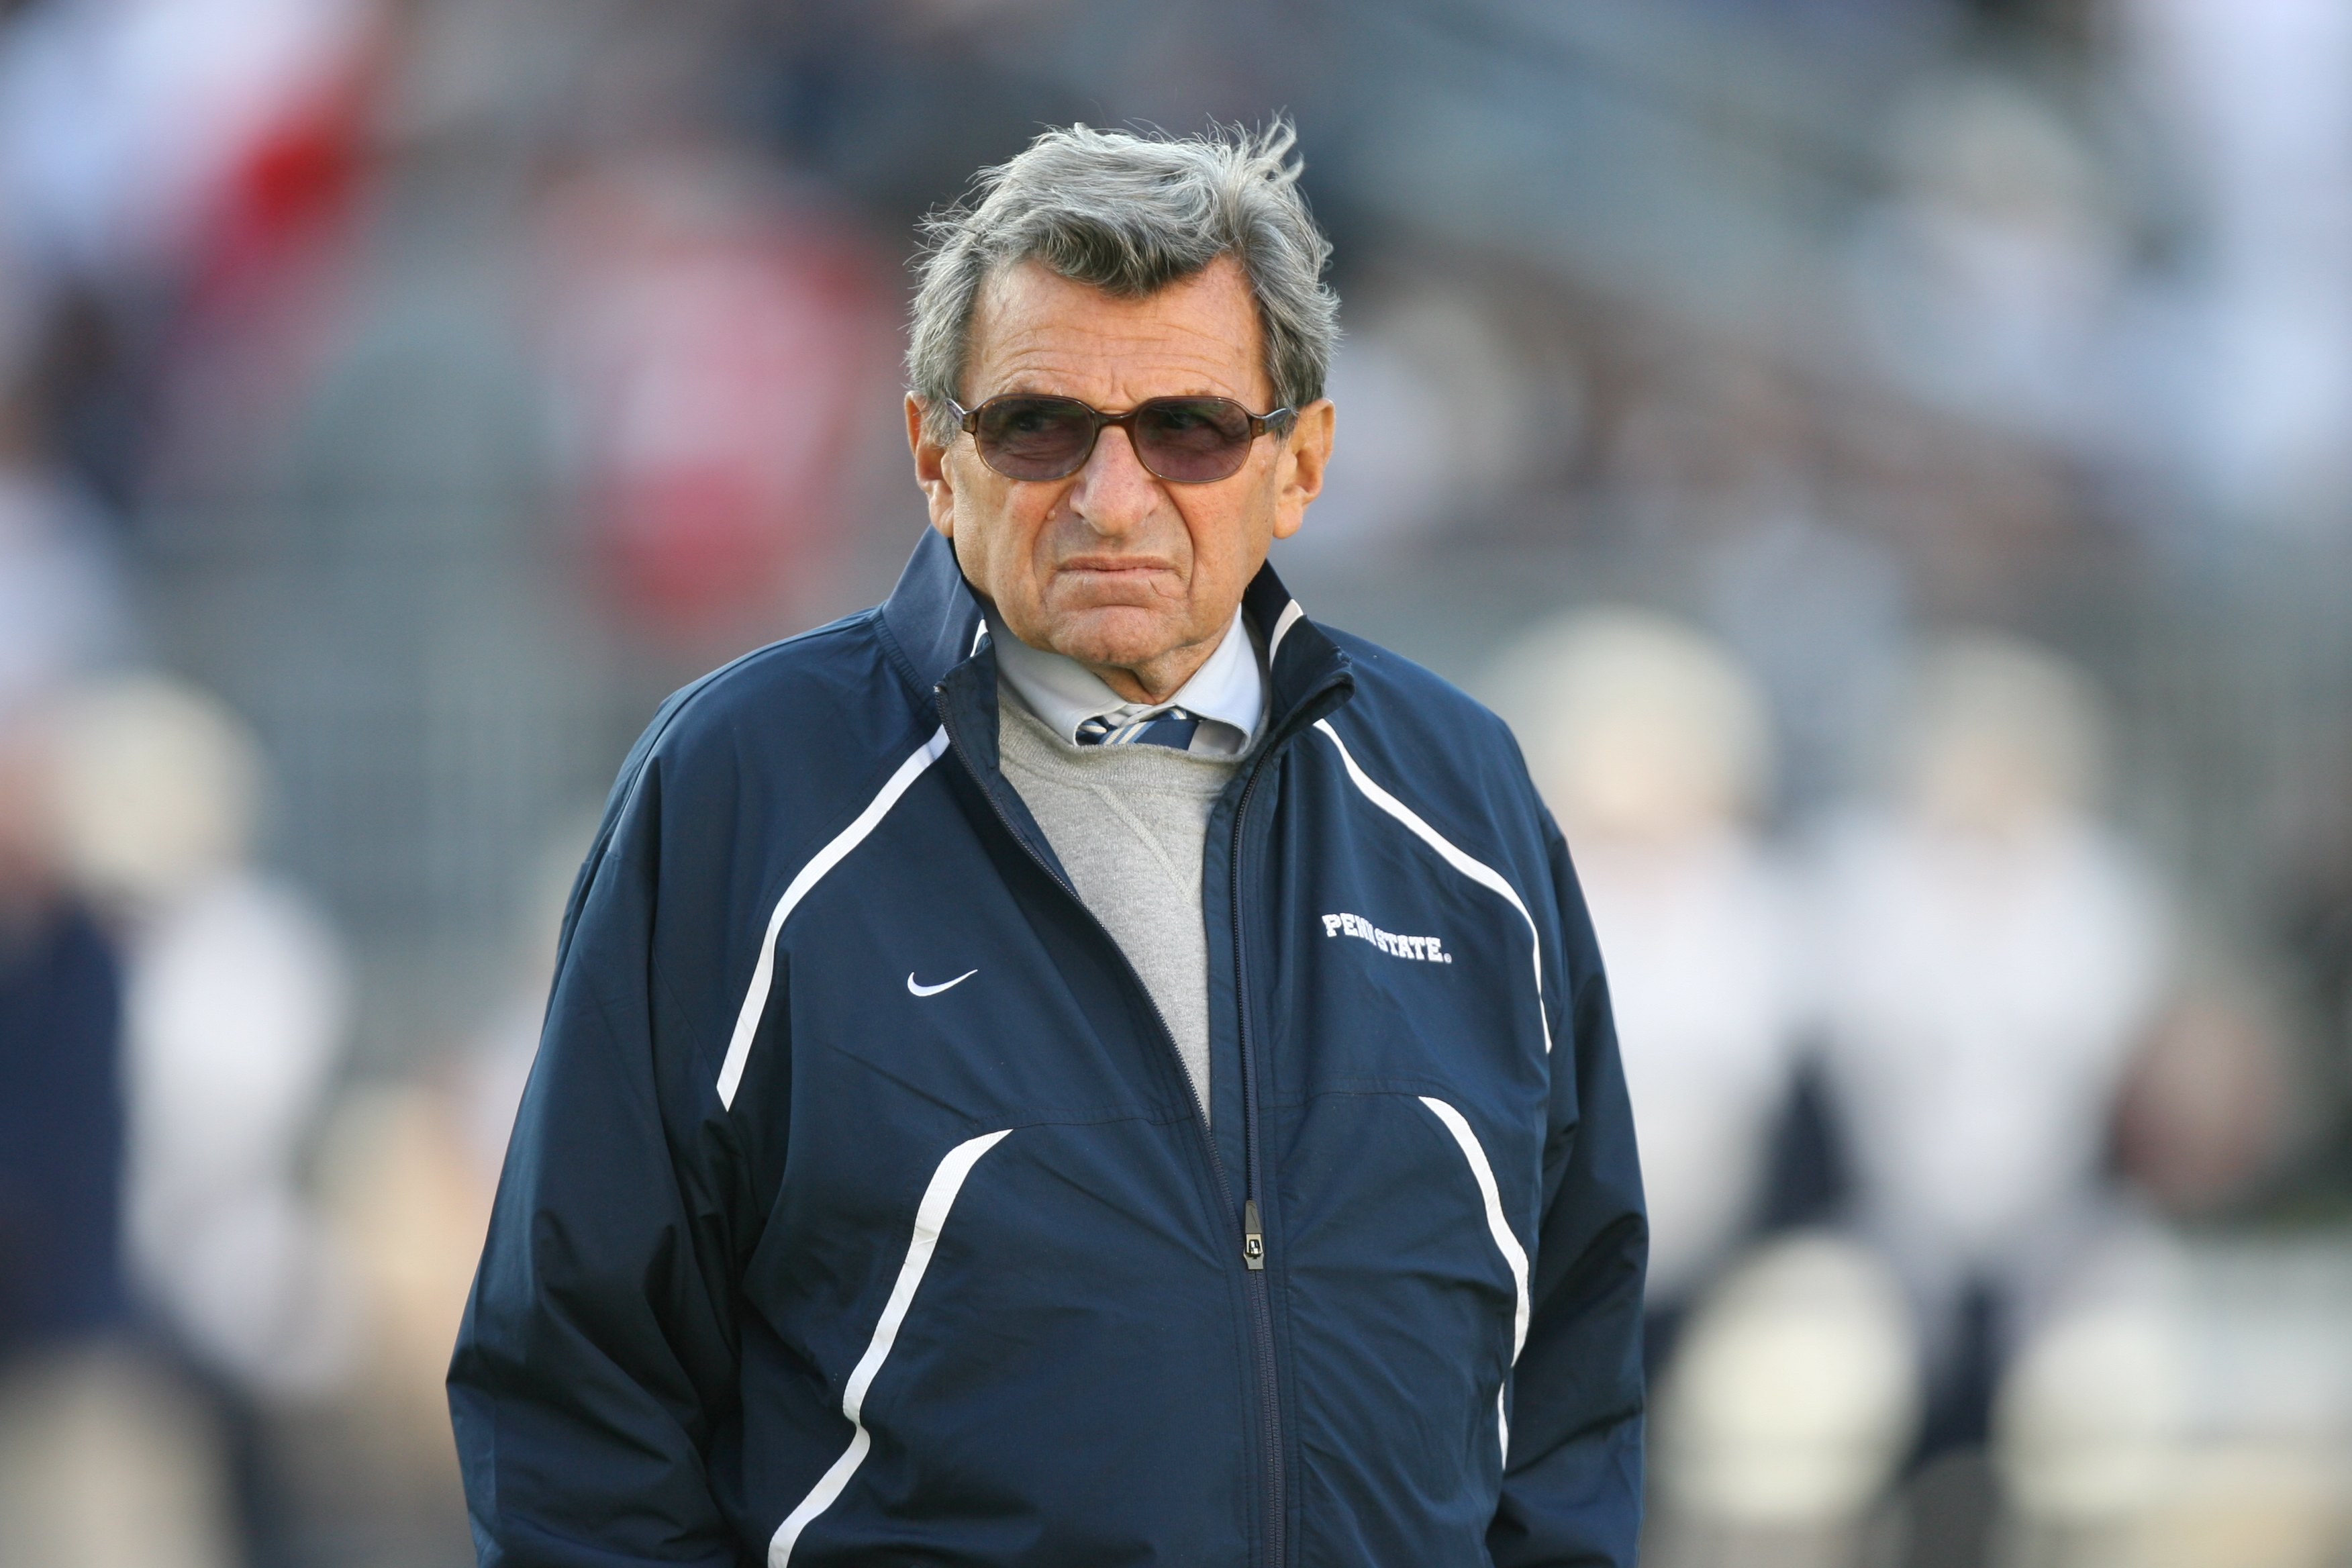 STATE COLLEGE, PA - NOVEMBER 7: Head coach Joe Paterno of the Penn State Nittany Lions watches warm-ups before a game against the Ohio State Buckeyes on November 7, 2009 at Beaver Stadium in State College, Pennsylvania. Ohio State won 24-7. (Photo by Hunt